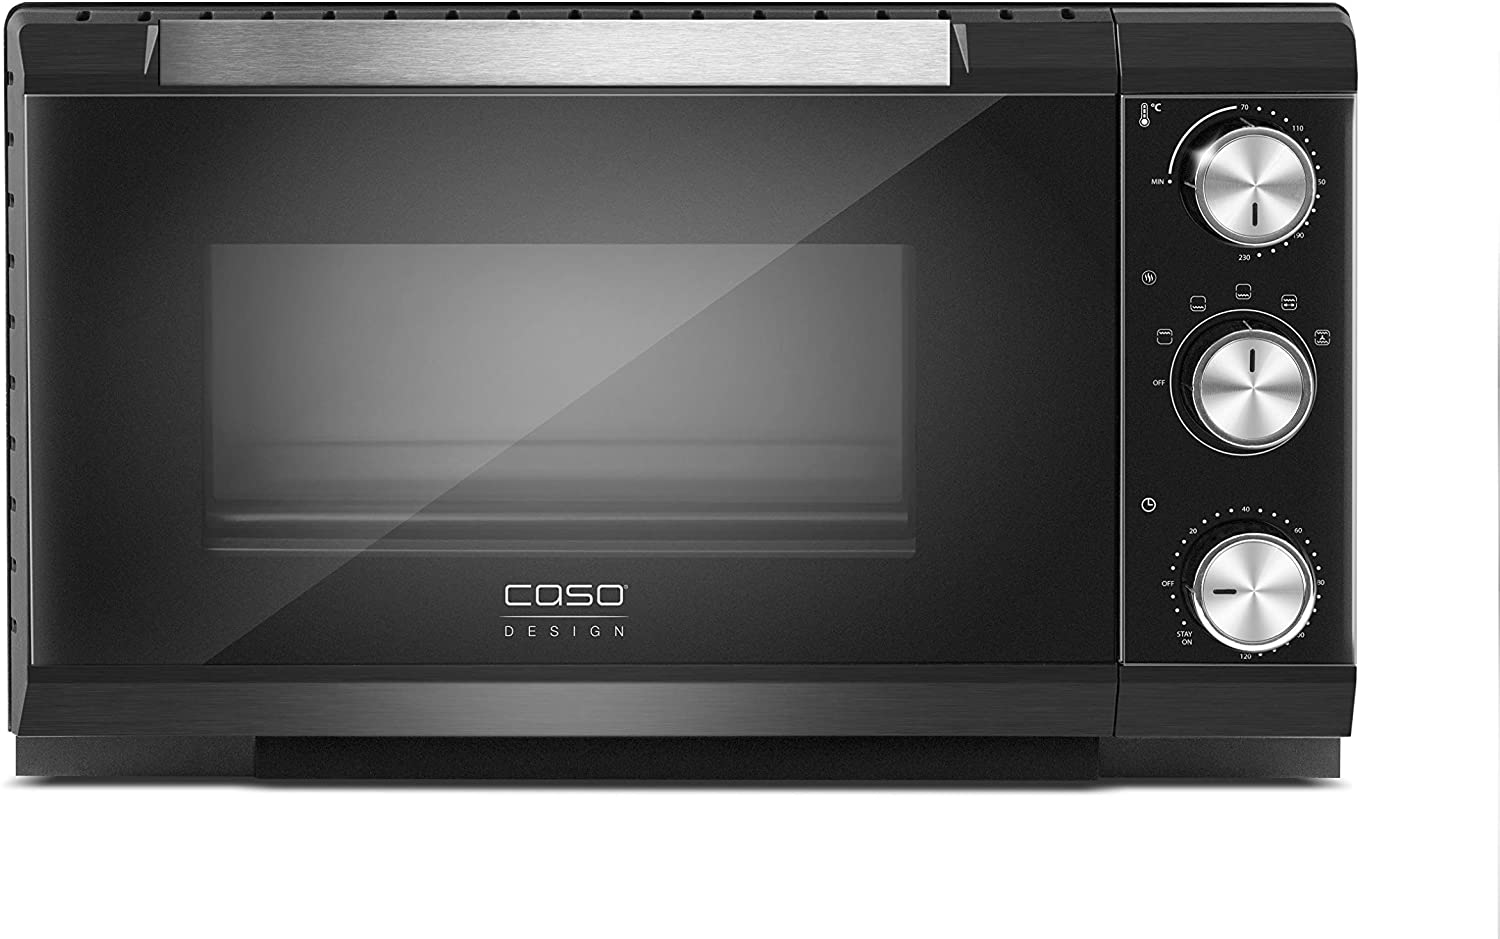 120 min Caso TO20 toaster oven 20 L Black Grill 1650 W TO20 20 L Black Rotary 70-230 /°C Mechanical